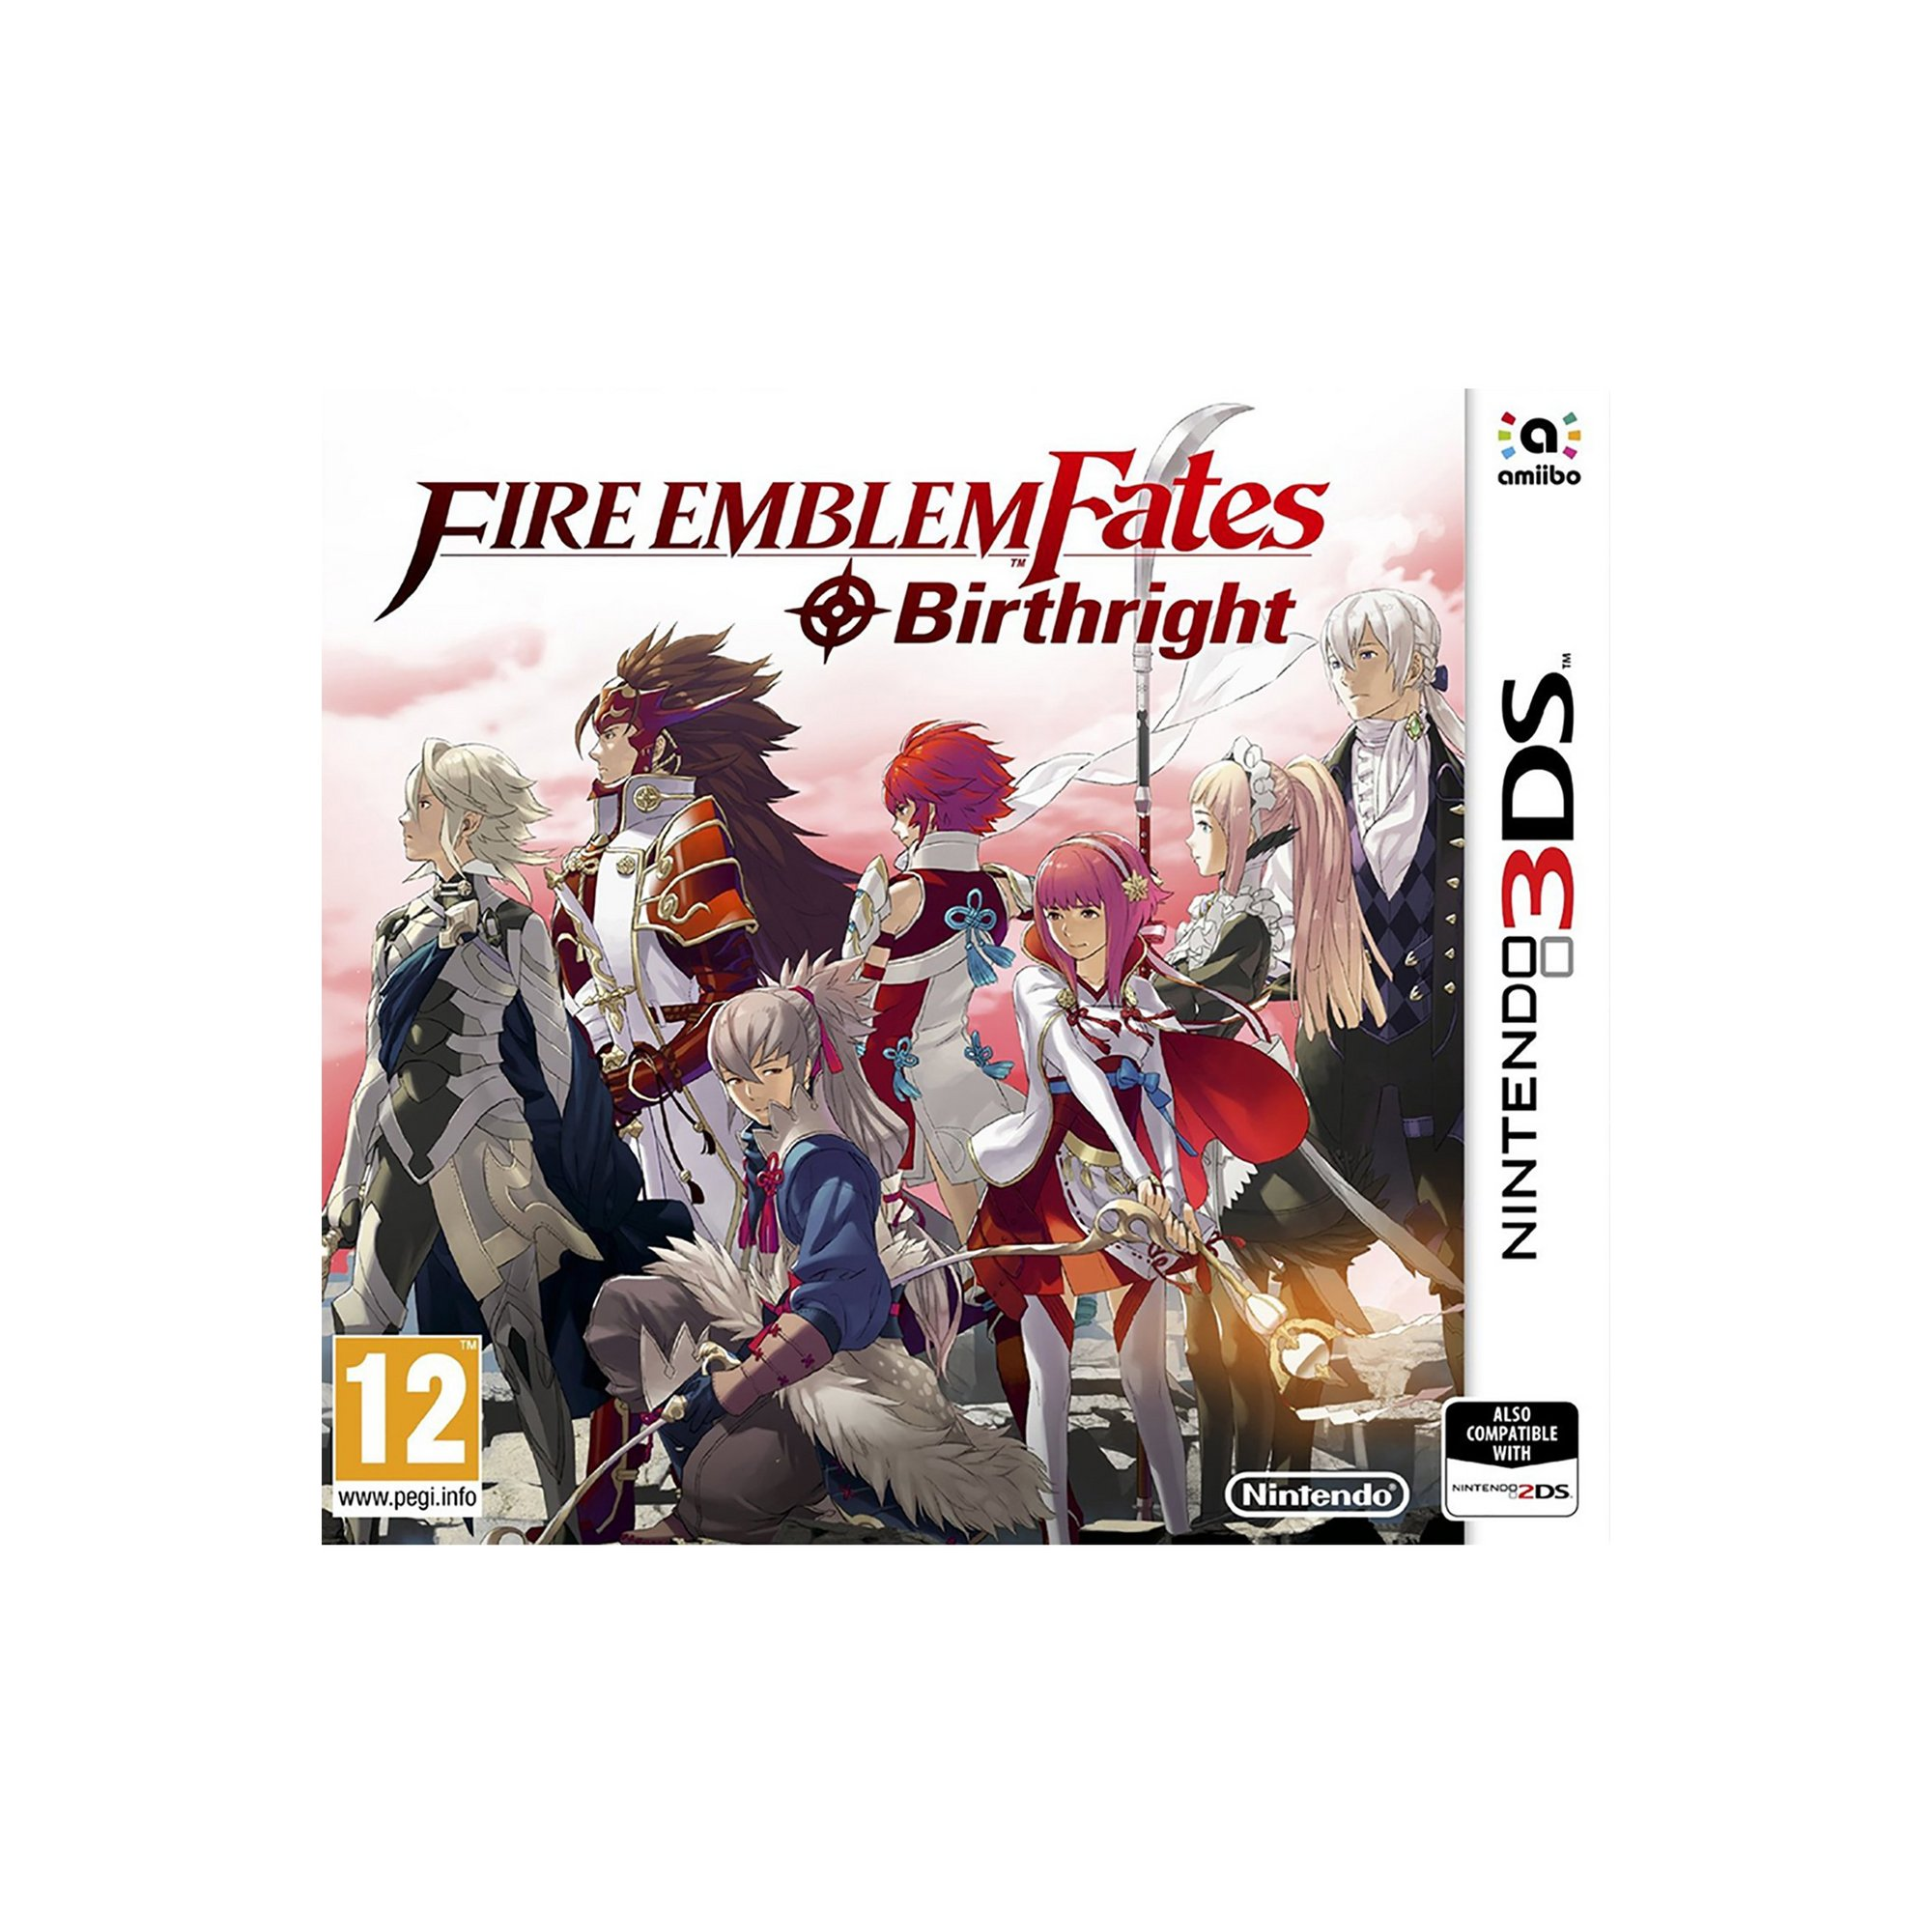 Image of 3DS: Fire Emblem Fates Birthright